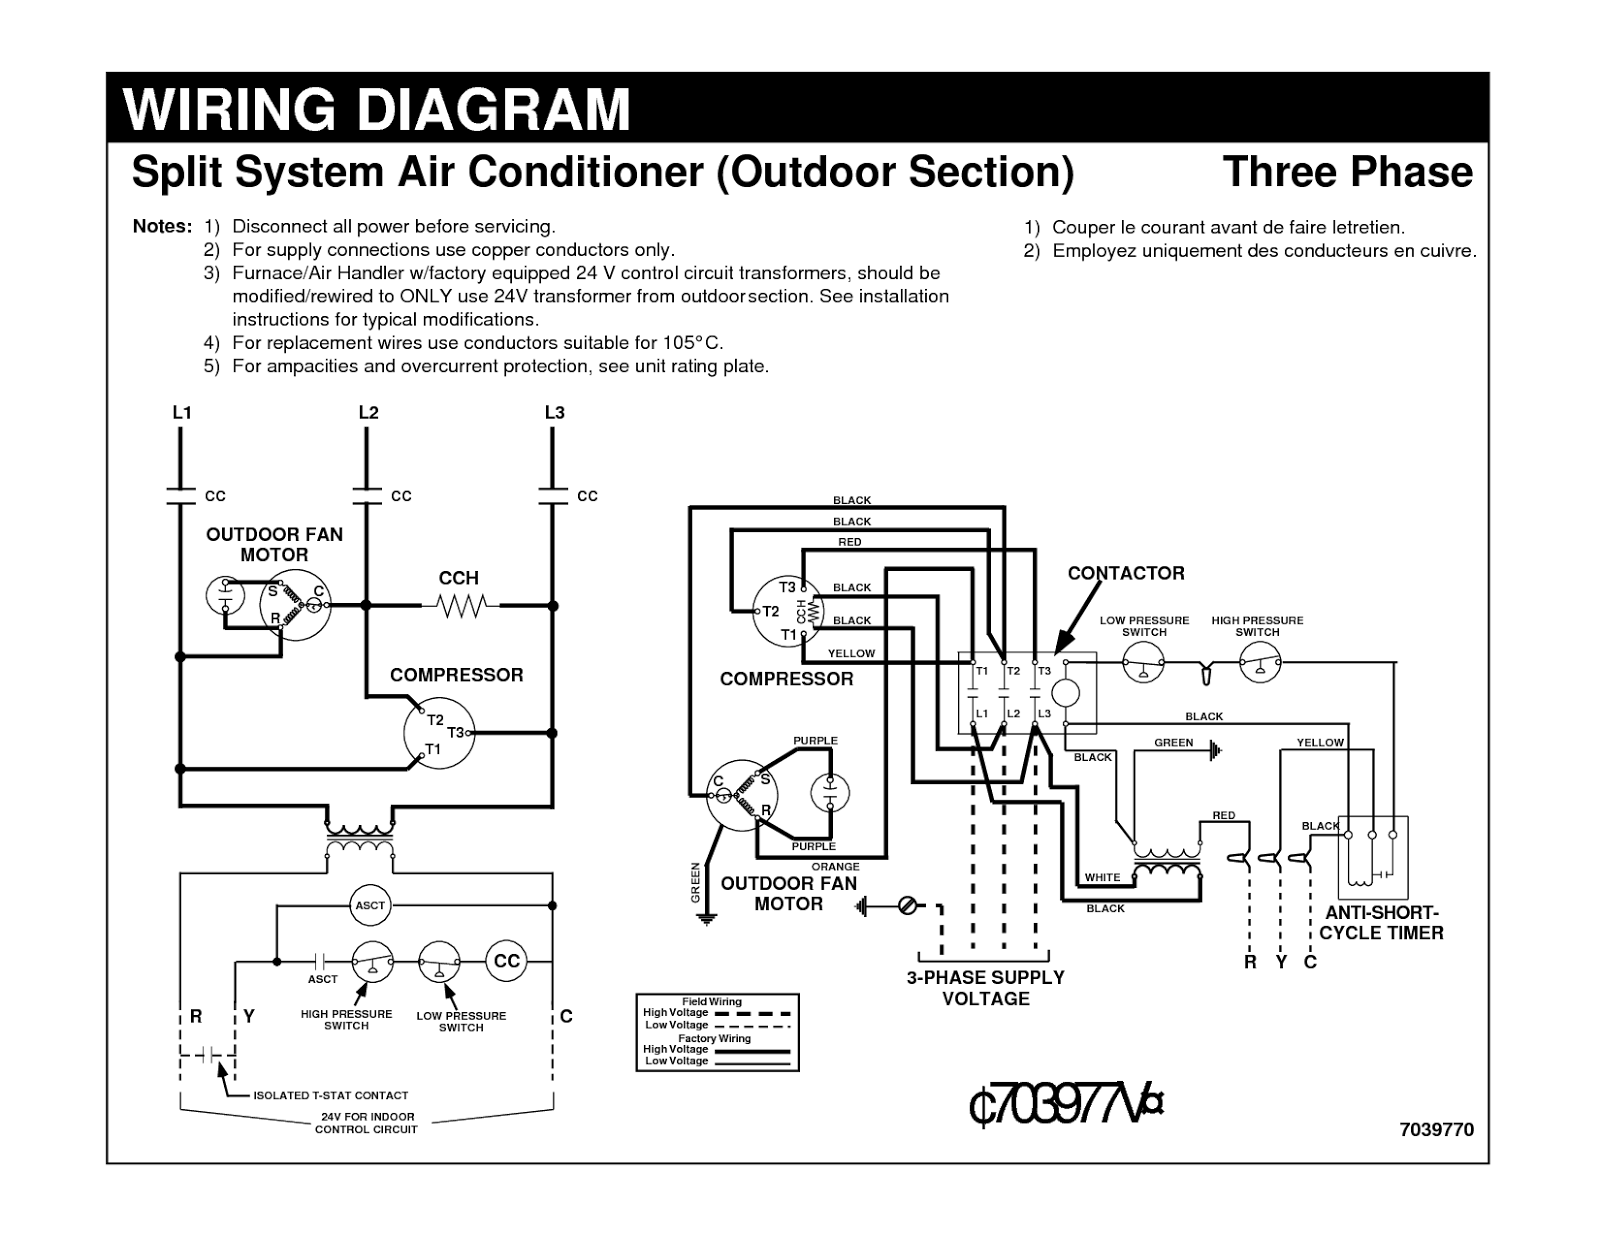 wiring+diagram+in+the+user+manual electrical wiring diagrams for air conditioning systems part one different types of electrical wiring diagrams at webbmarketing.co